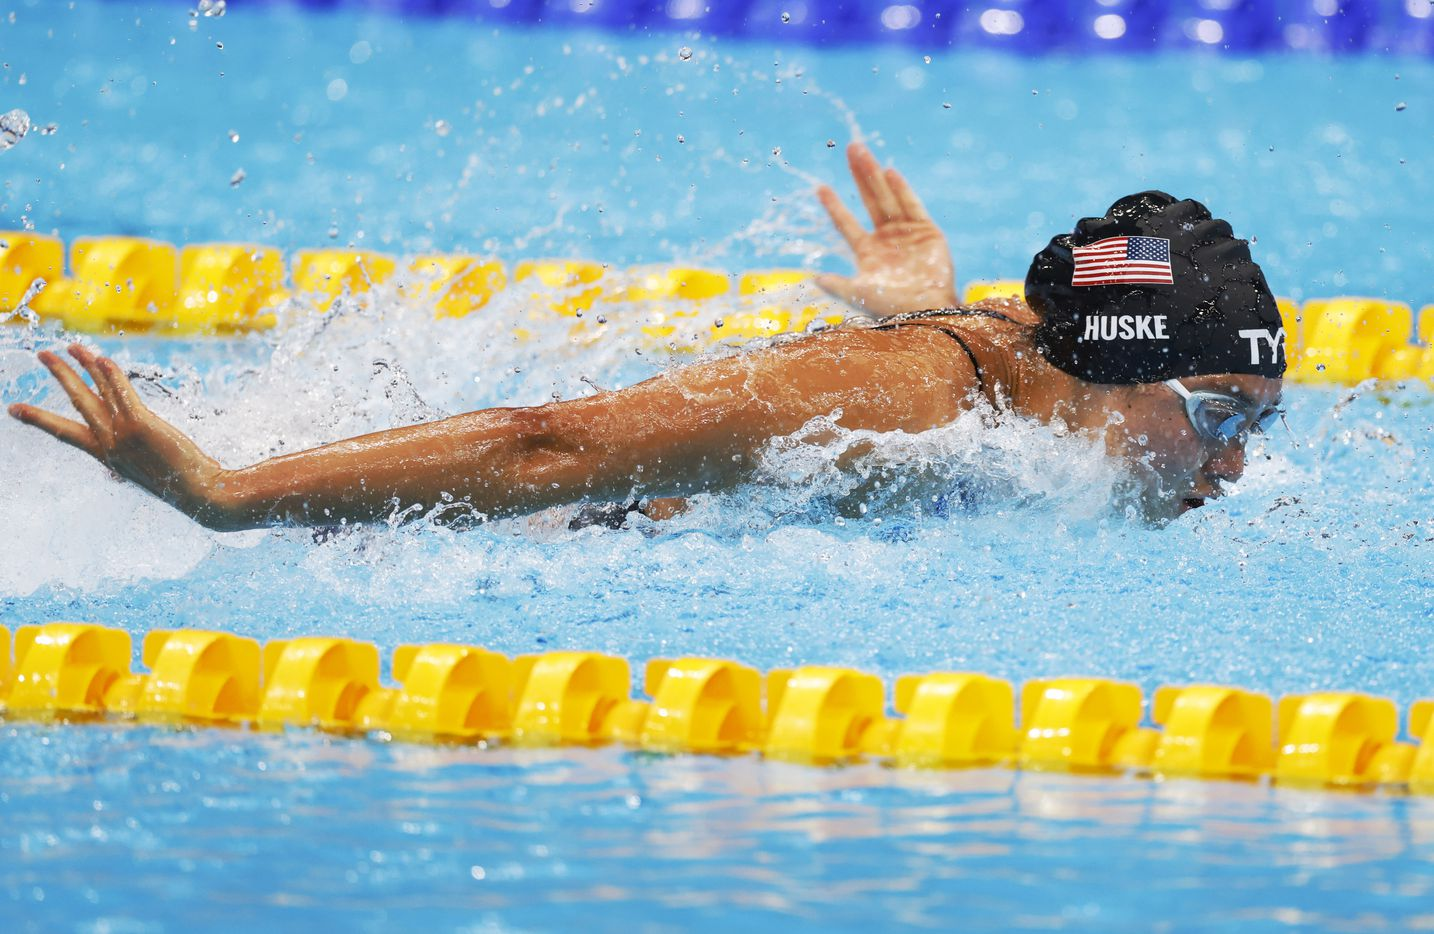 USA's Torri Huske competes in the women's 4x100 medley relay during the postponed 2020 Tokyo Olympics at Tokyo Aquatics Centre, on Sunday, August 1, 2021, in Tokyo, Japan. USA finished in second with a time of 3:51.60 to earn a silver medal. (Vernon Bryant/The Dallas Morning News)